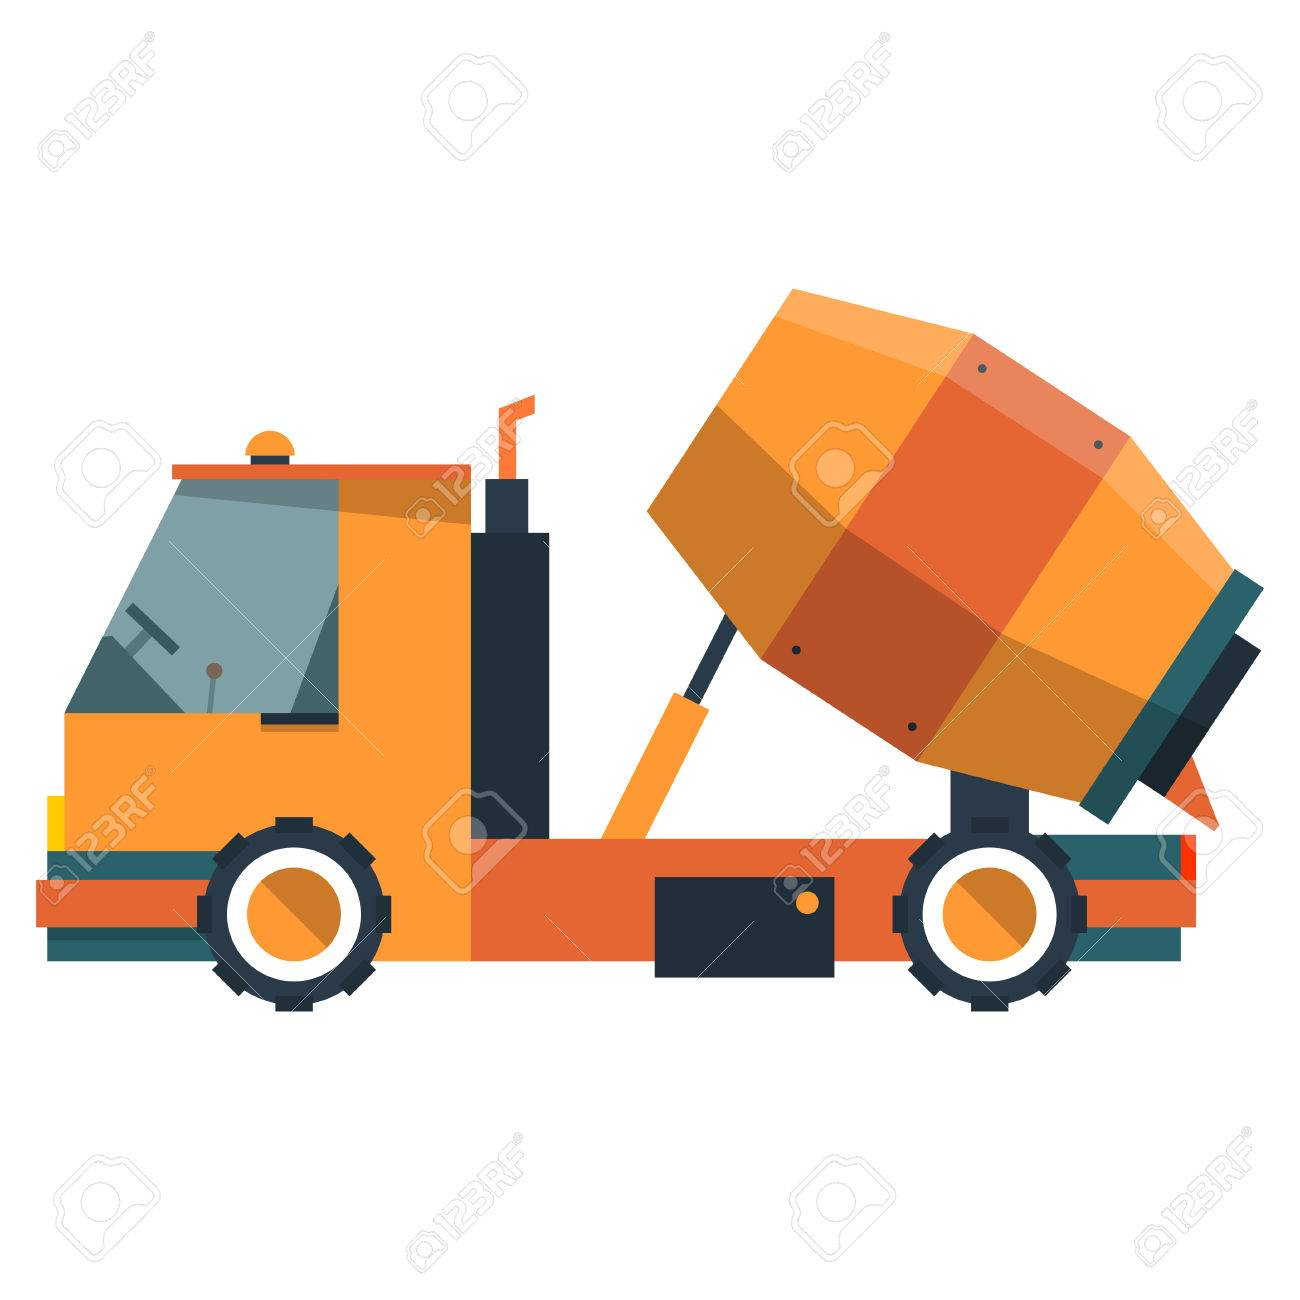 Construction Equipment For Pouring Of Cement Vector Illustration On A